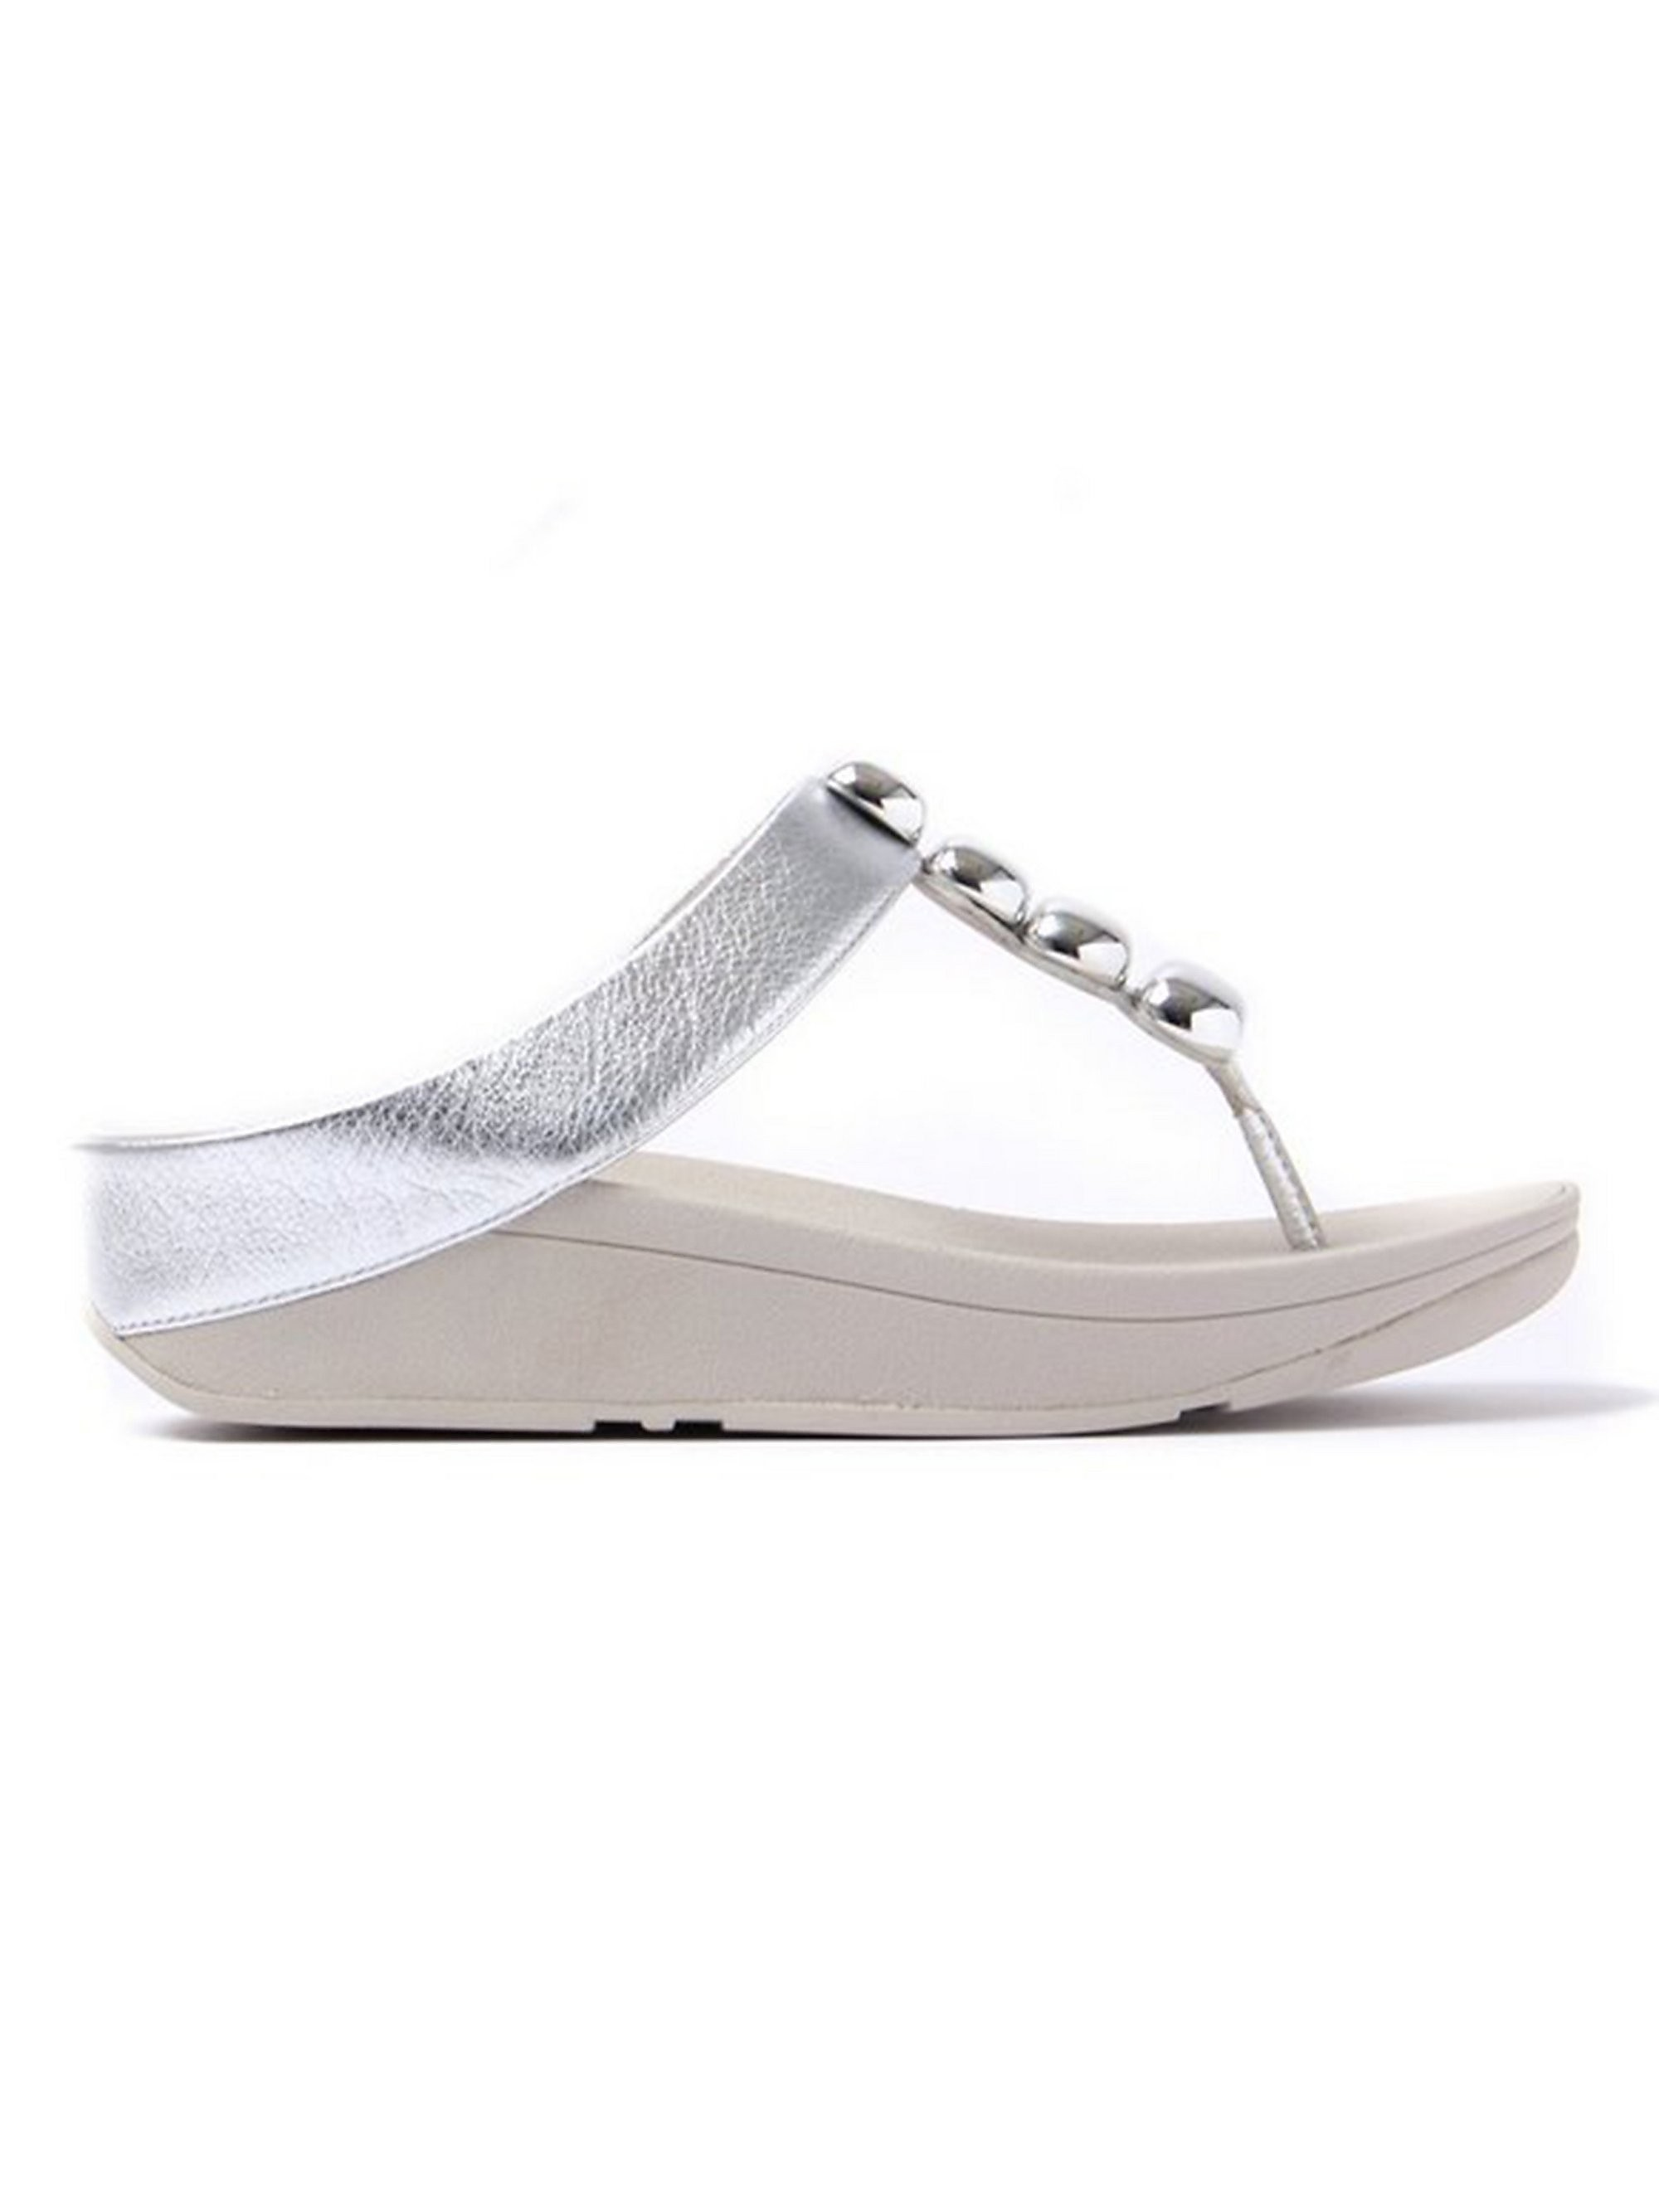 FitFlop Women's Rola Leather Toe-Post Sandals - Silver